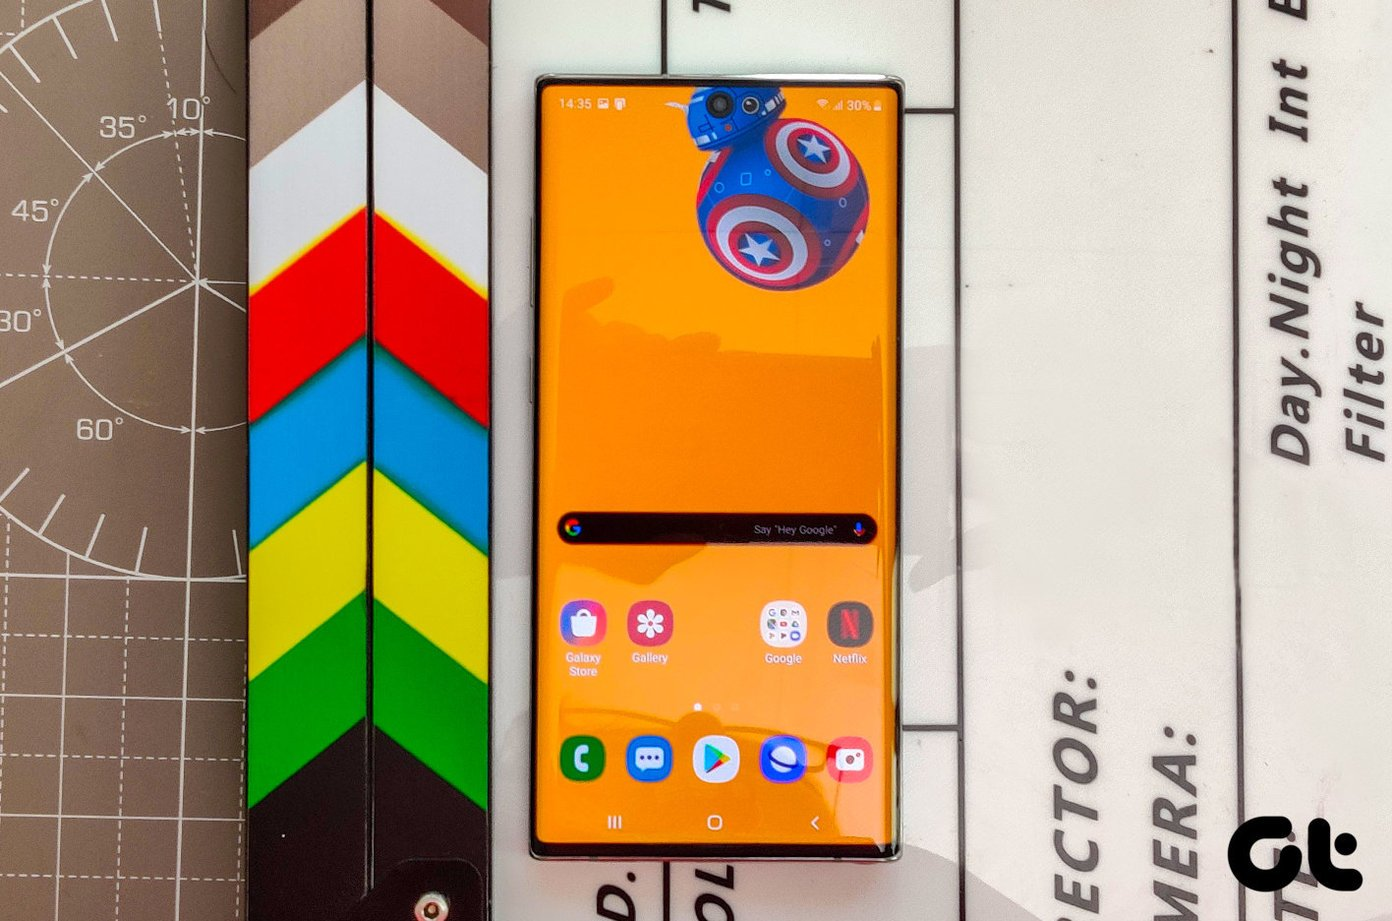 Best Wallpaper Apps For The Samsung Galaxy Note 10 Note 10 Wallpapers Punch Hole 1392x921 Wallpaper Teahub Io